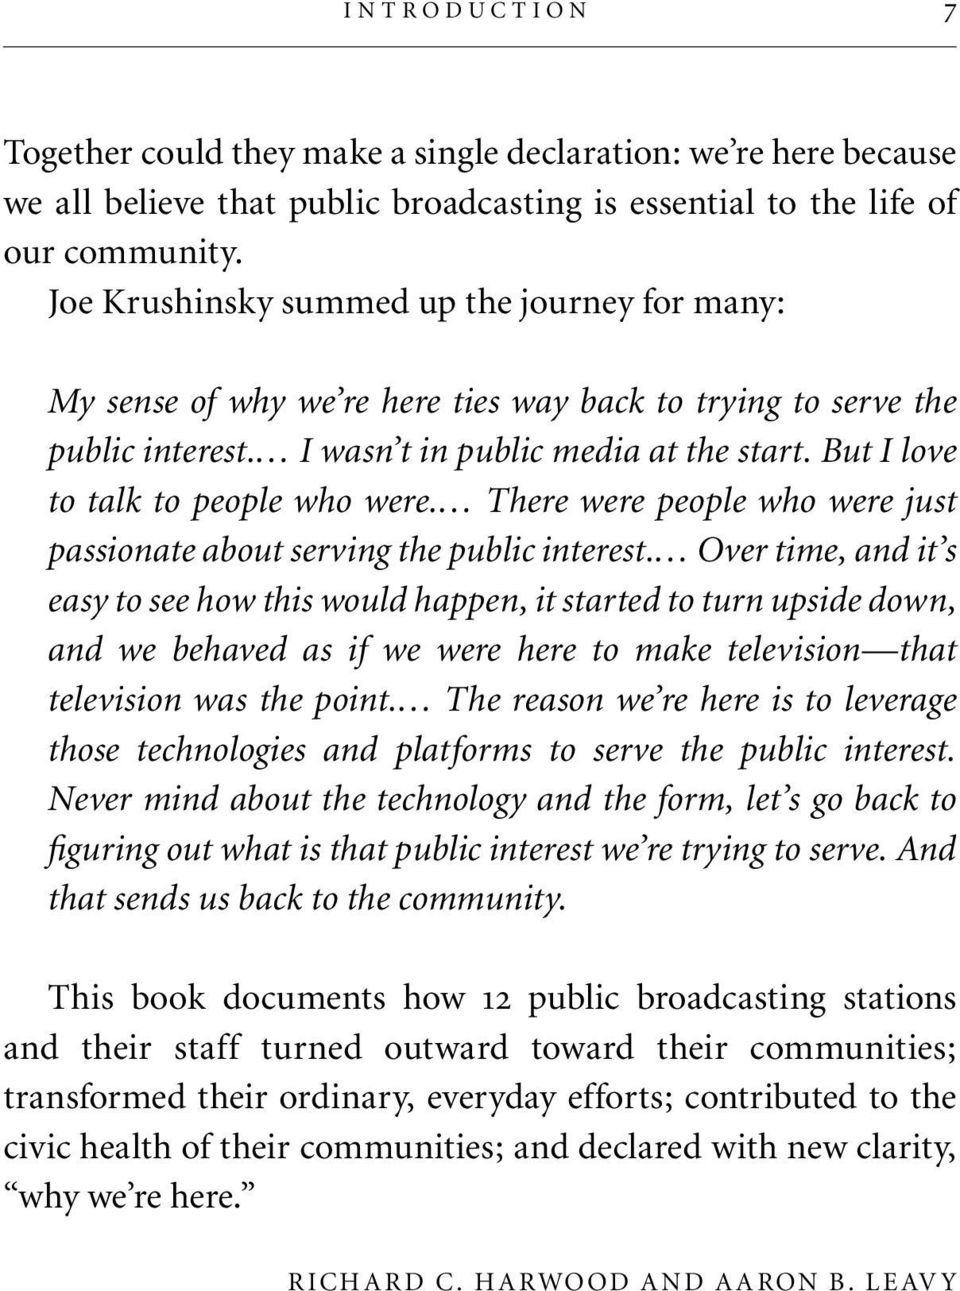 But I love to talk to people who were. There were people who were just passionate about serving the public interest.